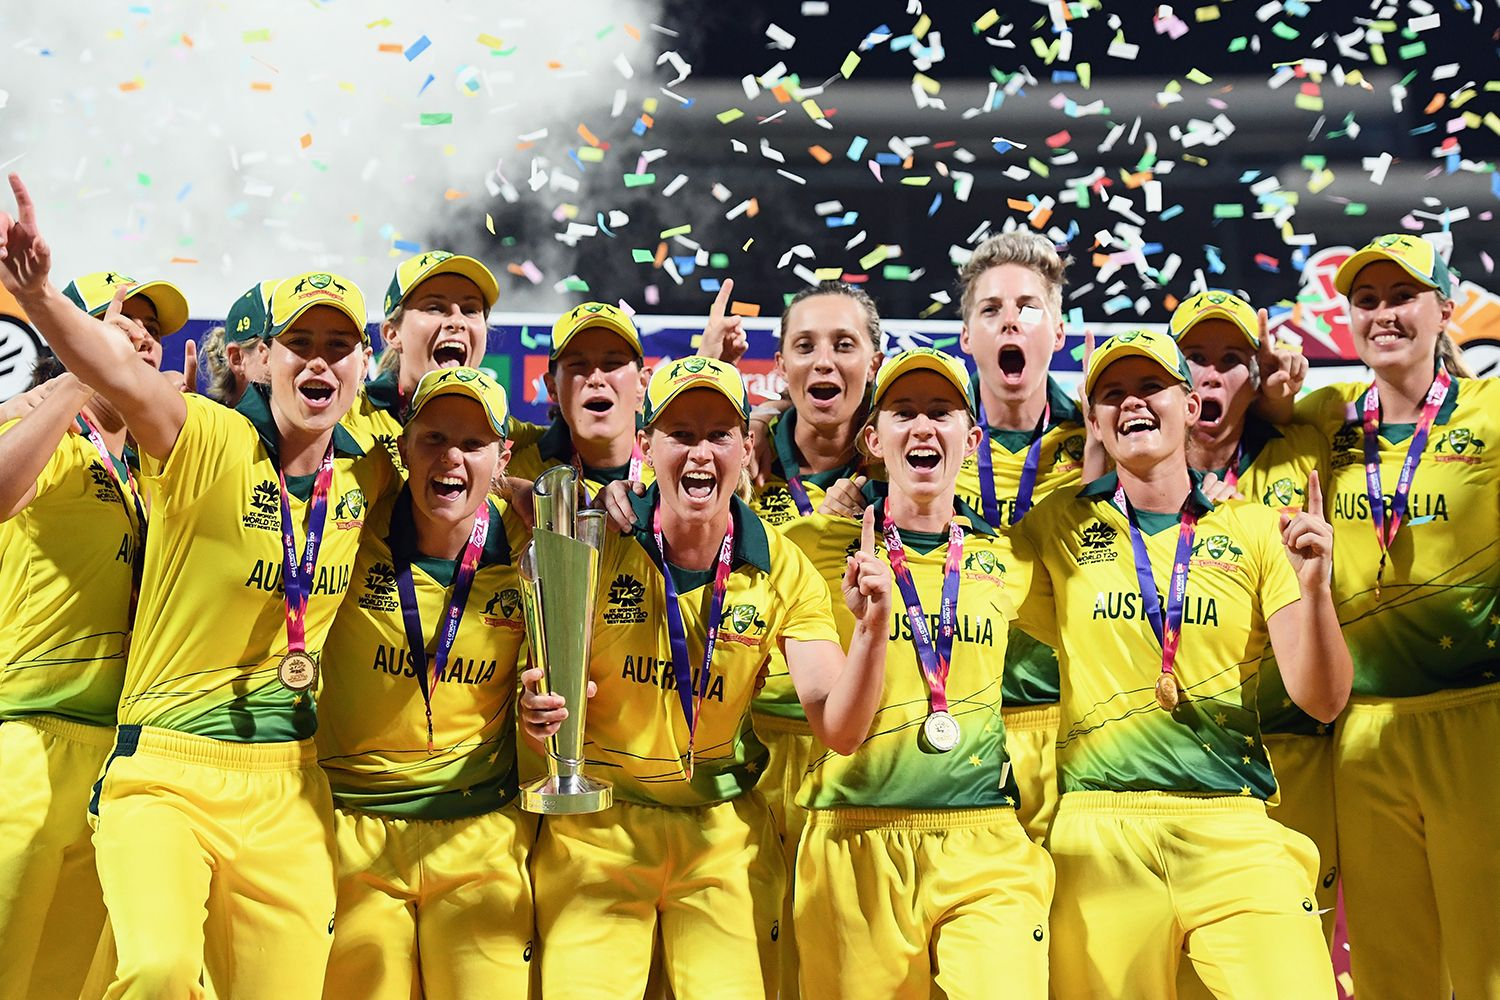 ICC T20 Women's World Cup Australia